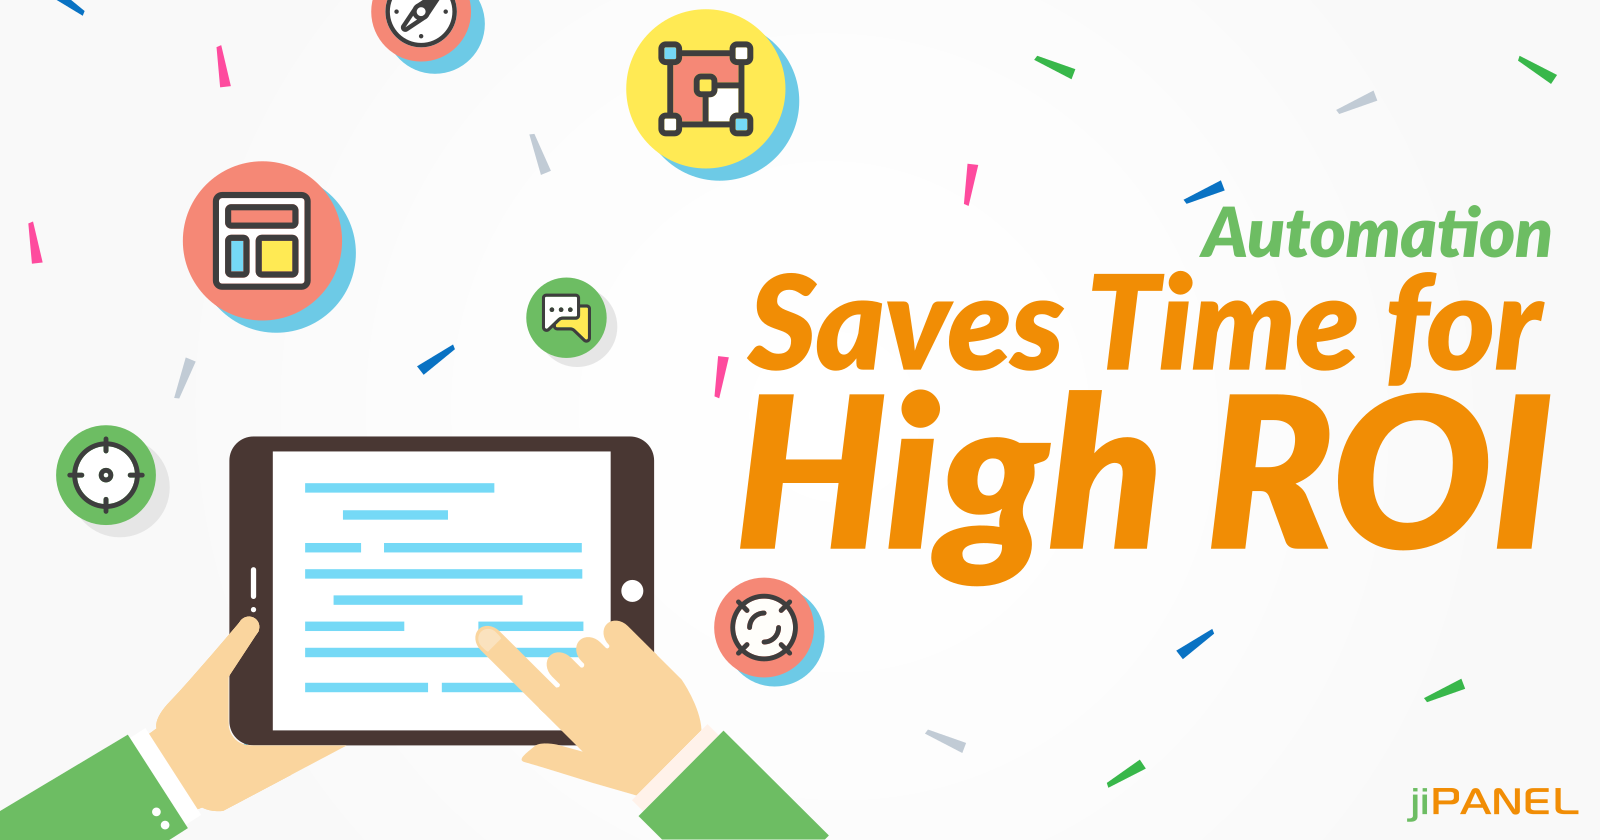 Automating Processes: Saves Time for High ROI